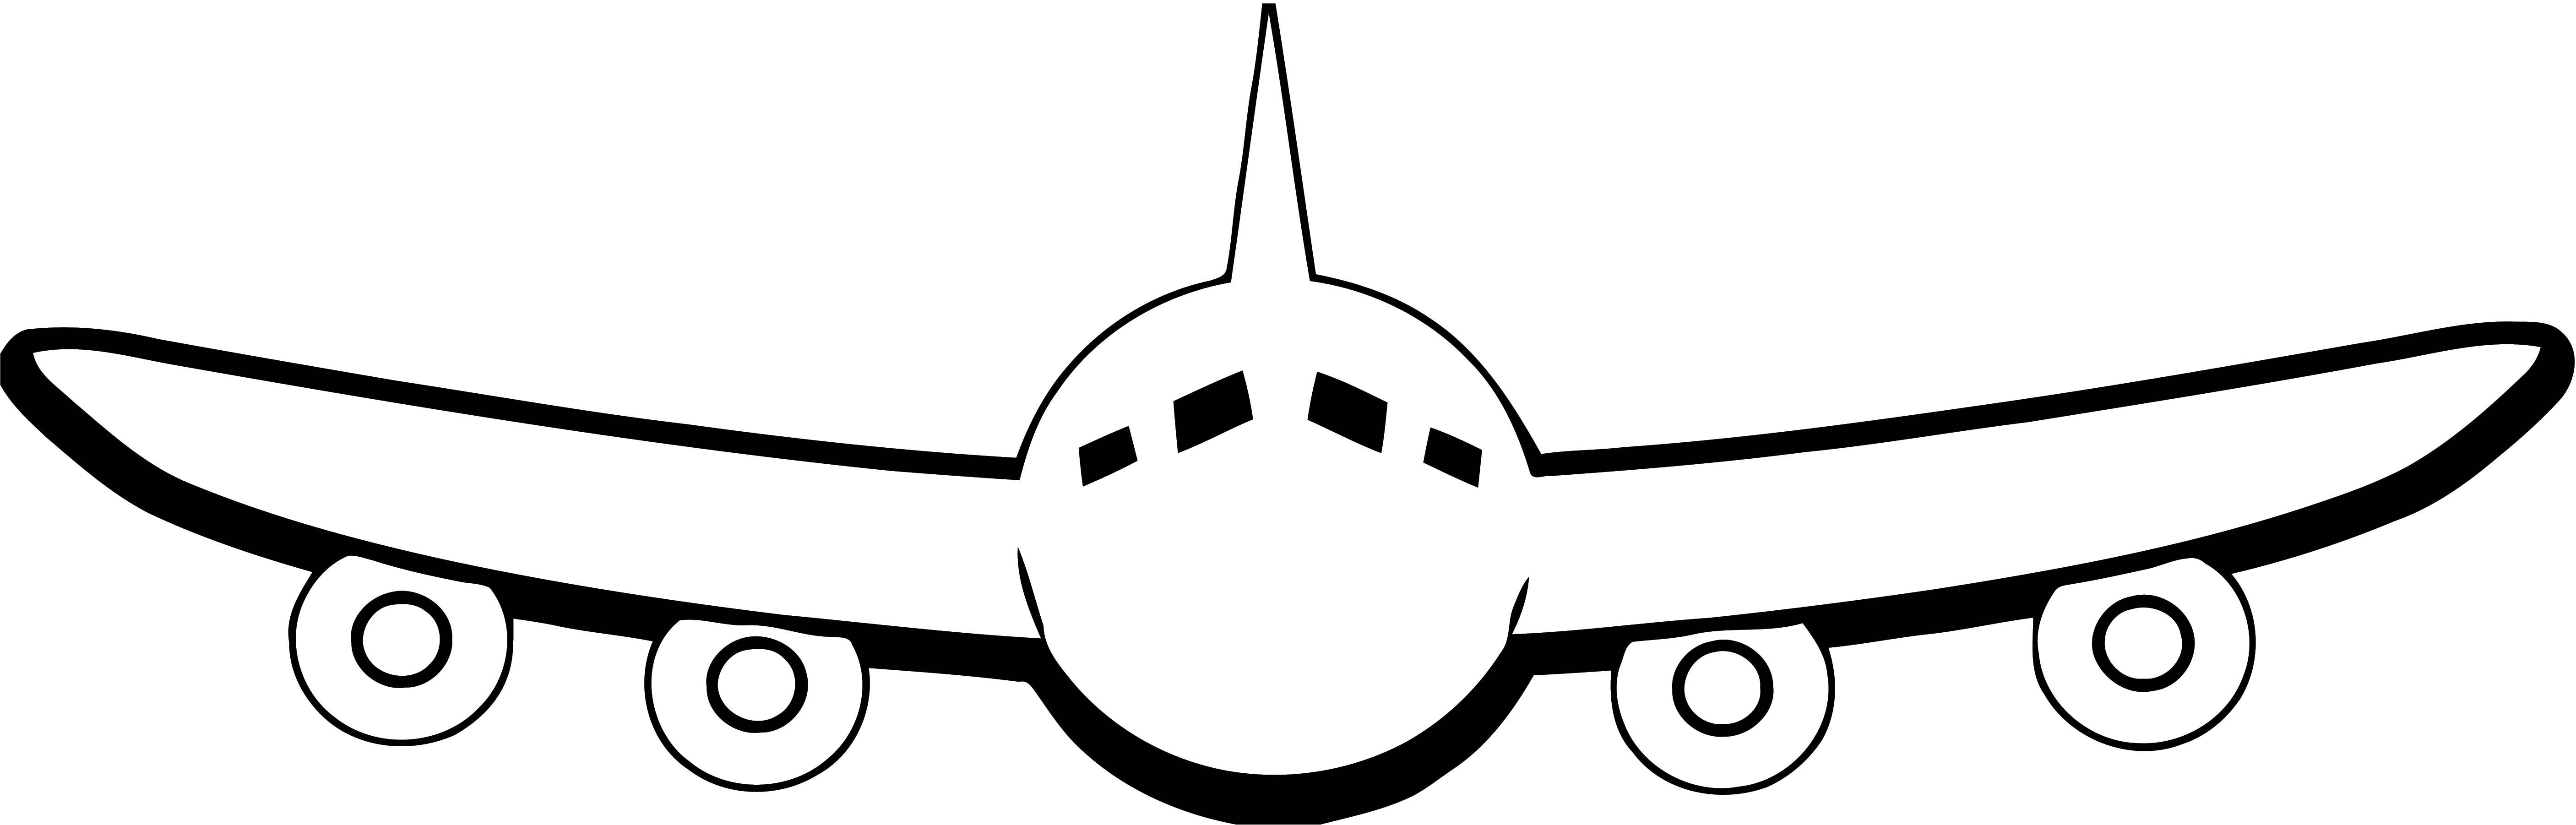 Plane We Coloring Page 74